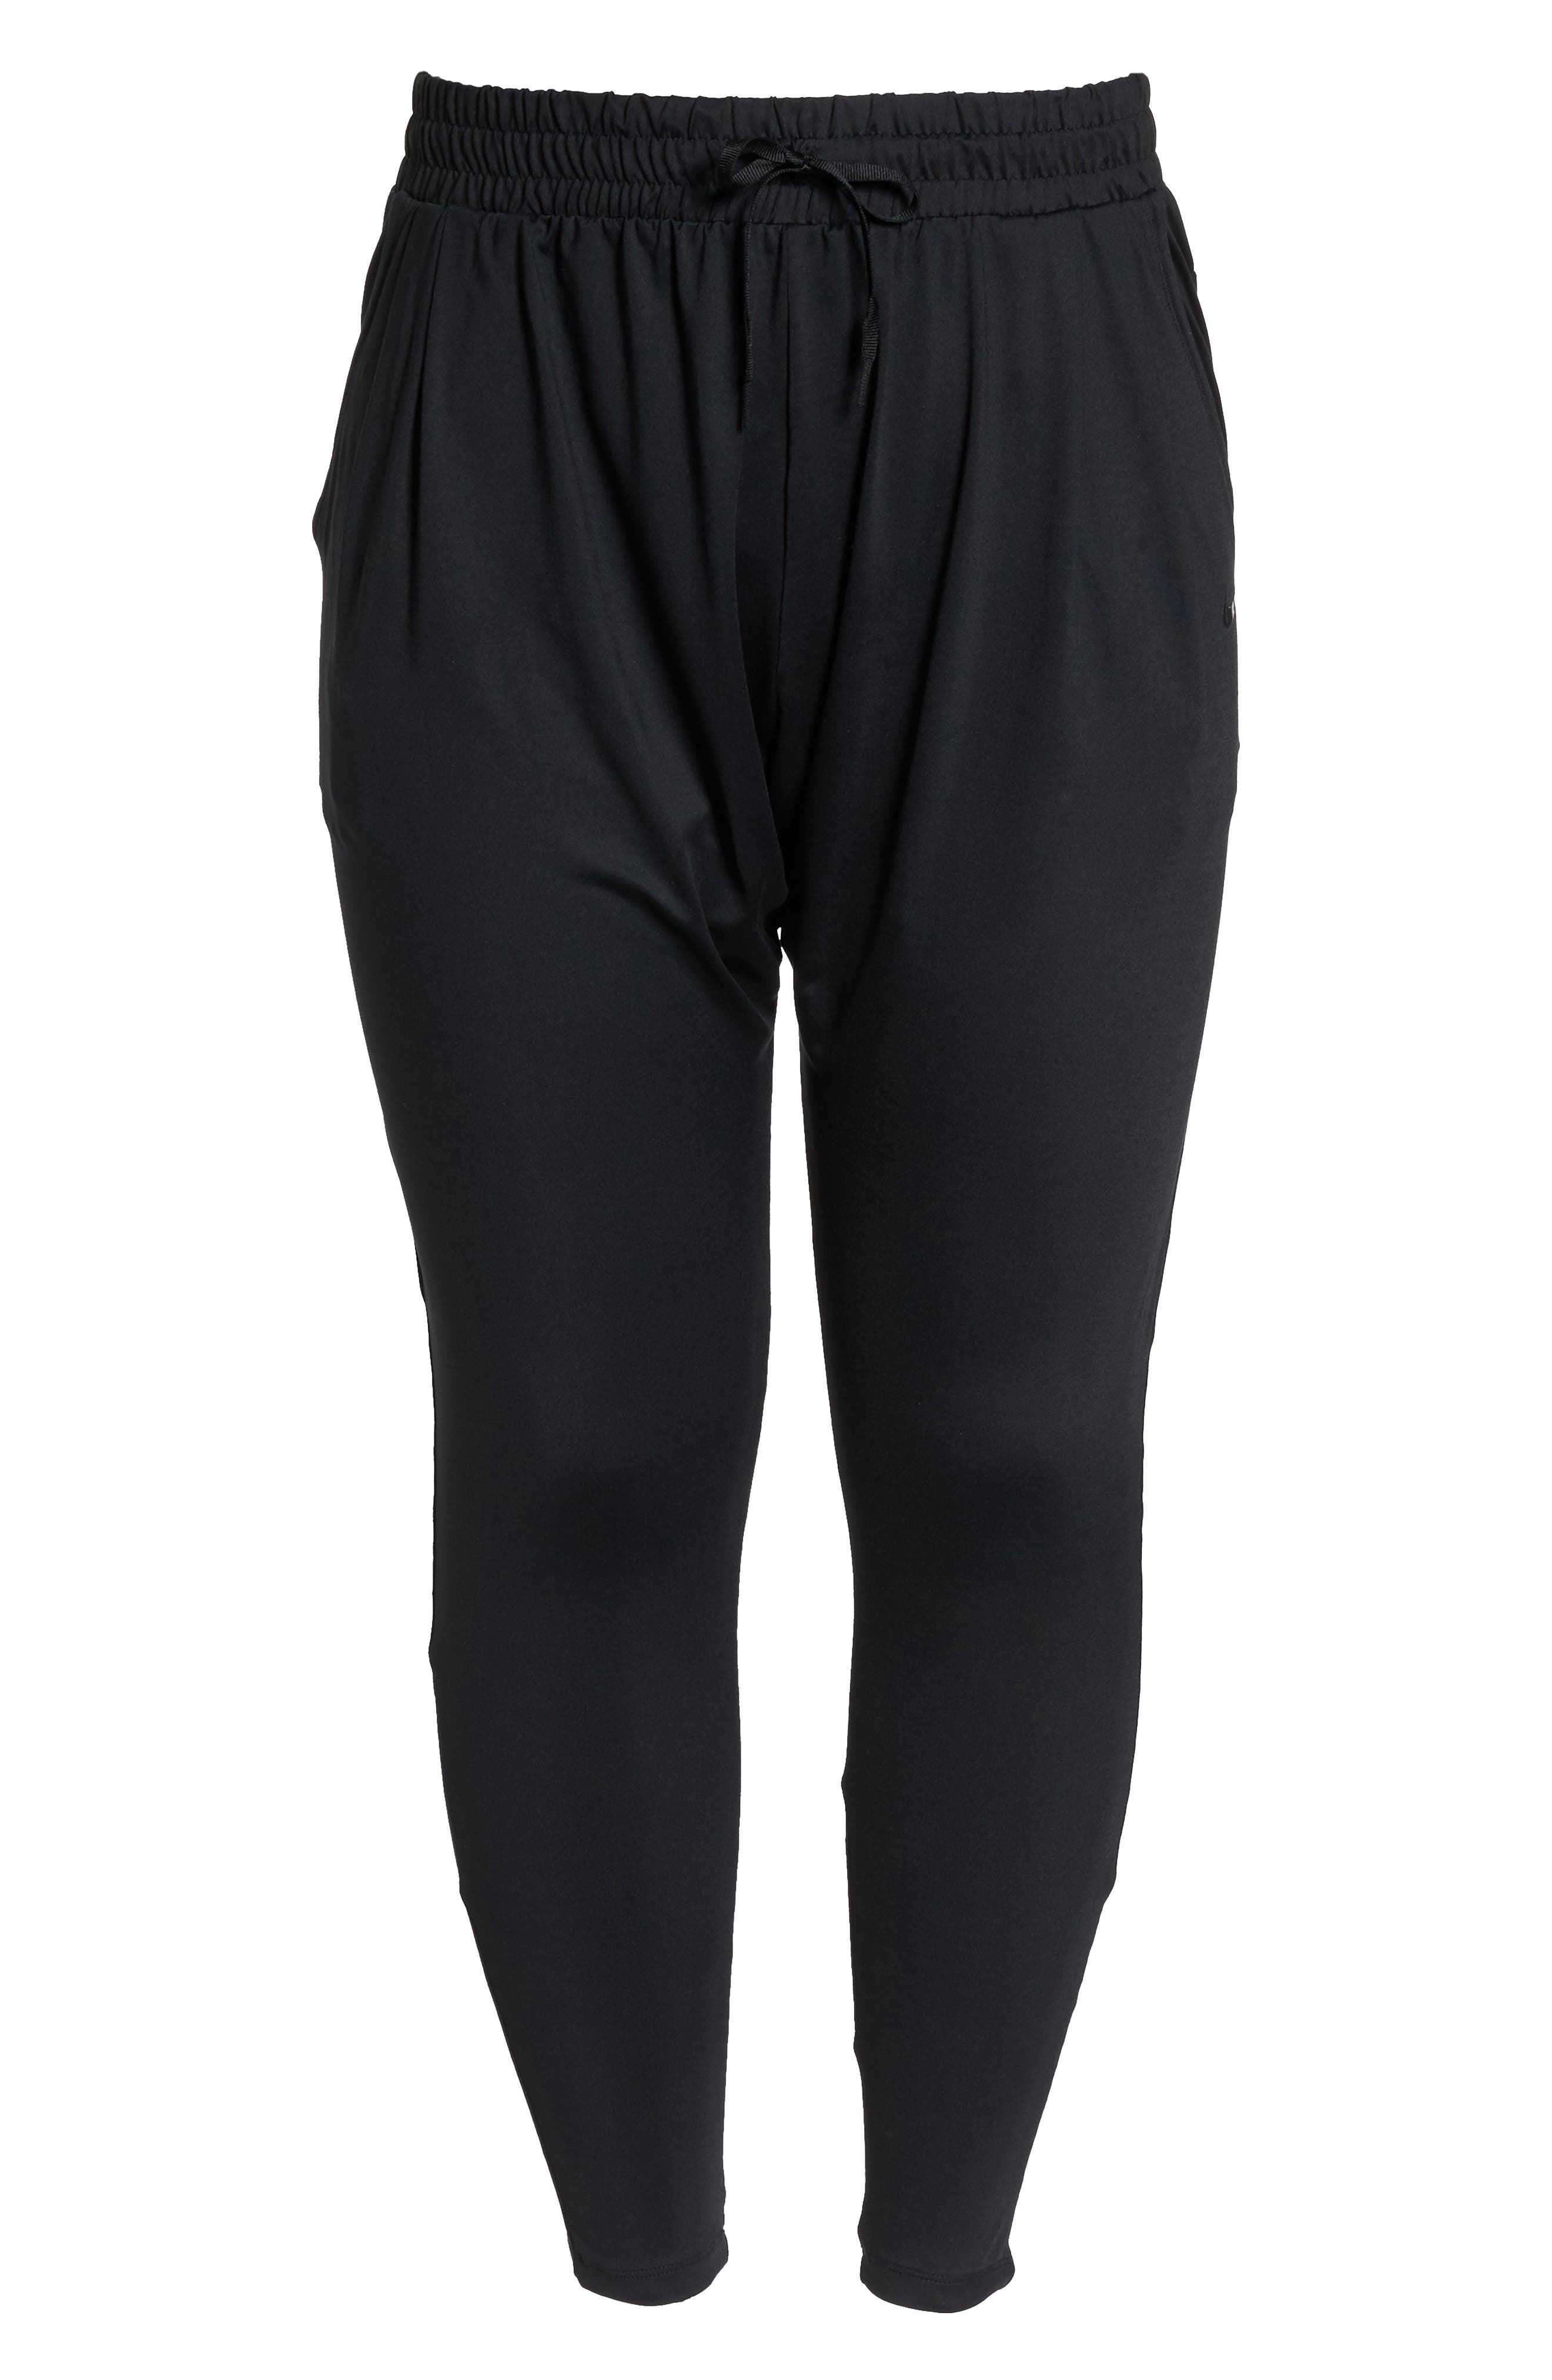 Dry Lux Flow Training Pants,                             Alternate thumbnail 6, color,                             BLACK/ CLEAR